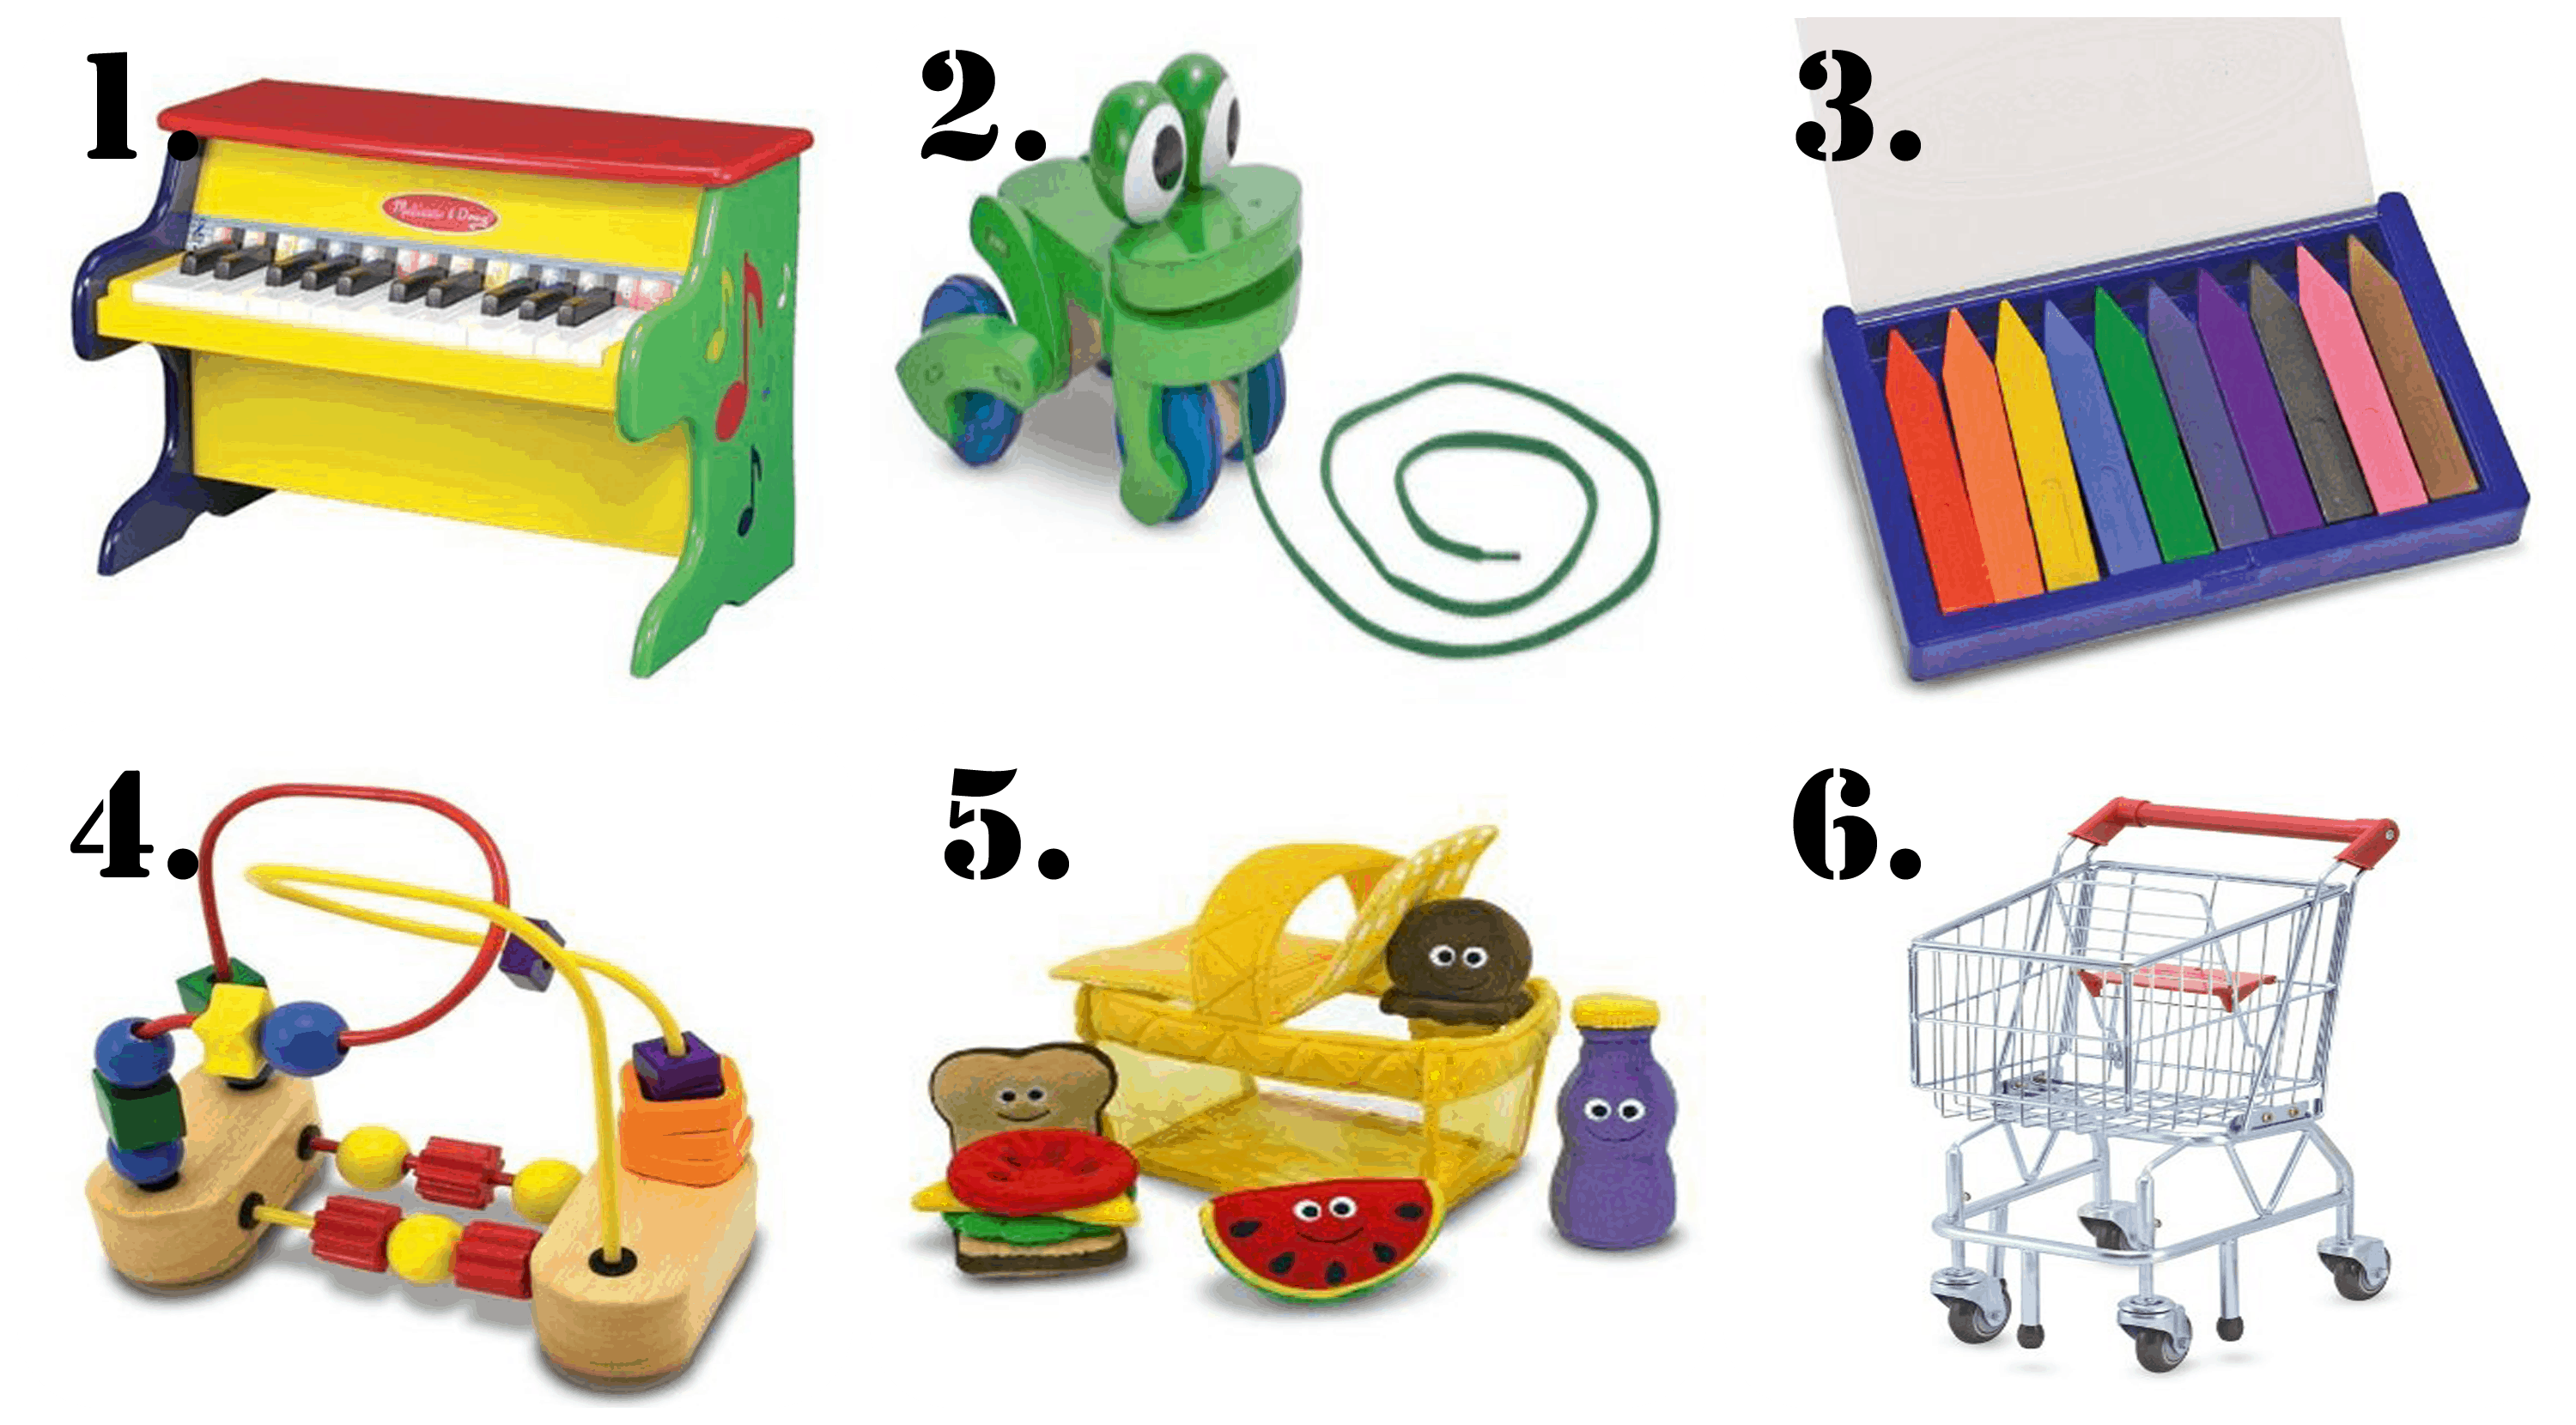 Melissa and Doug Toys are some of the best birthday presents for a 1 year old including the piano, pull along frog, crayons, shopping cart and more.